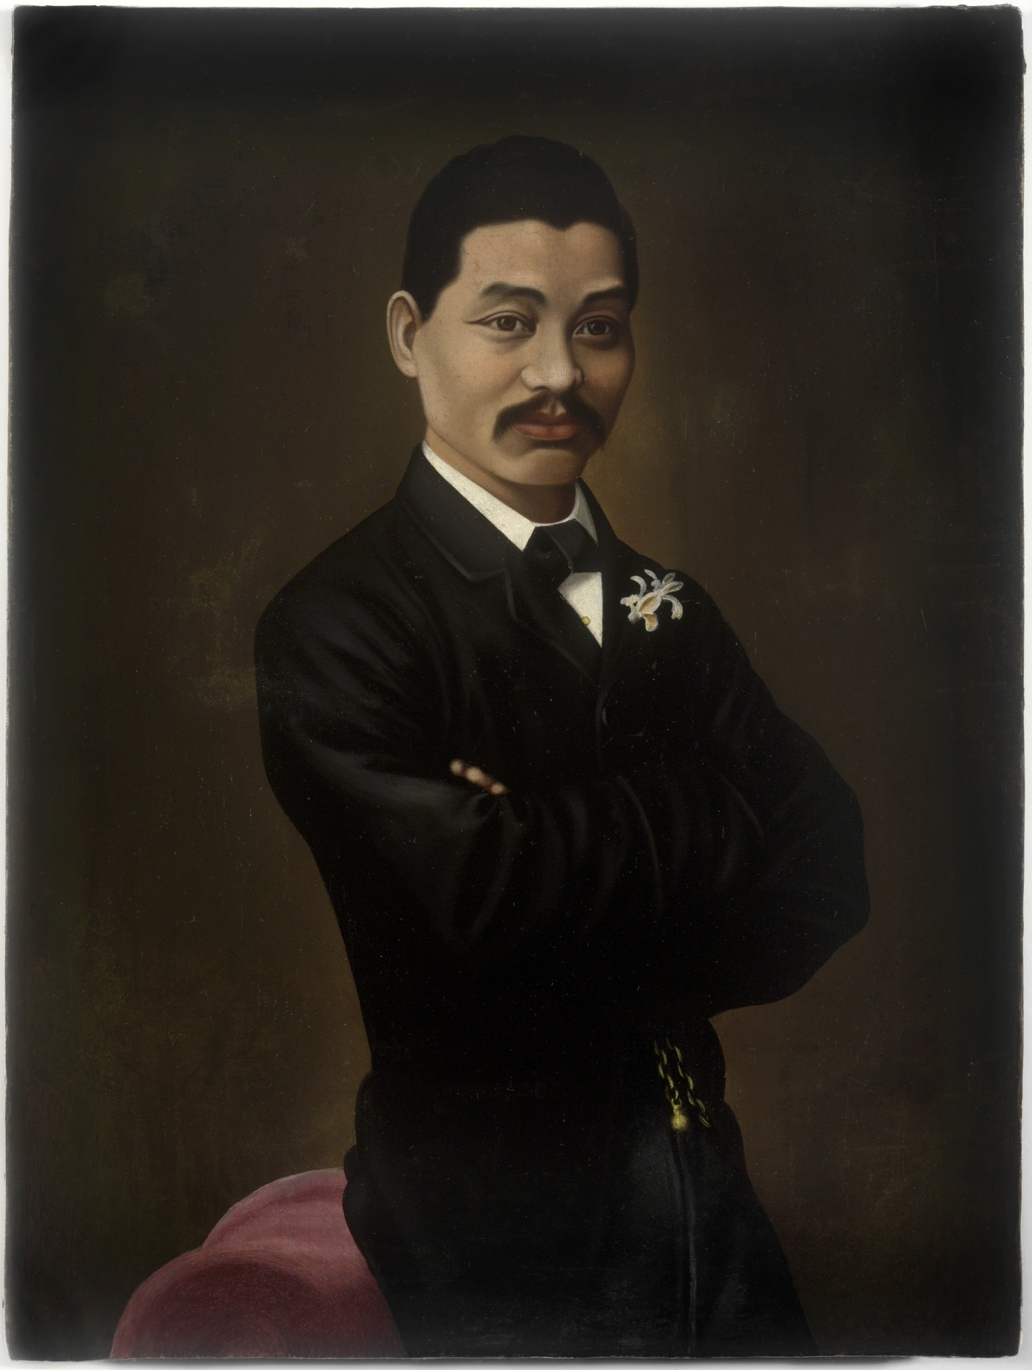 Oil painting of man in dark suit.